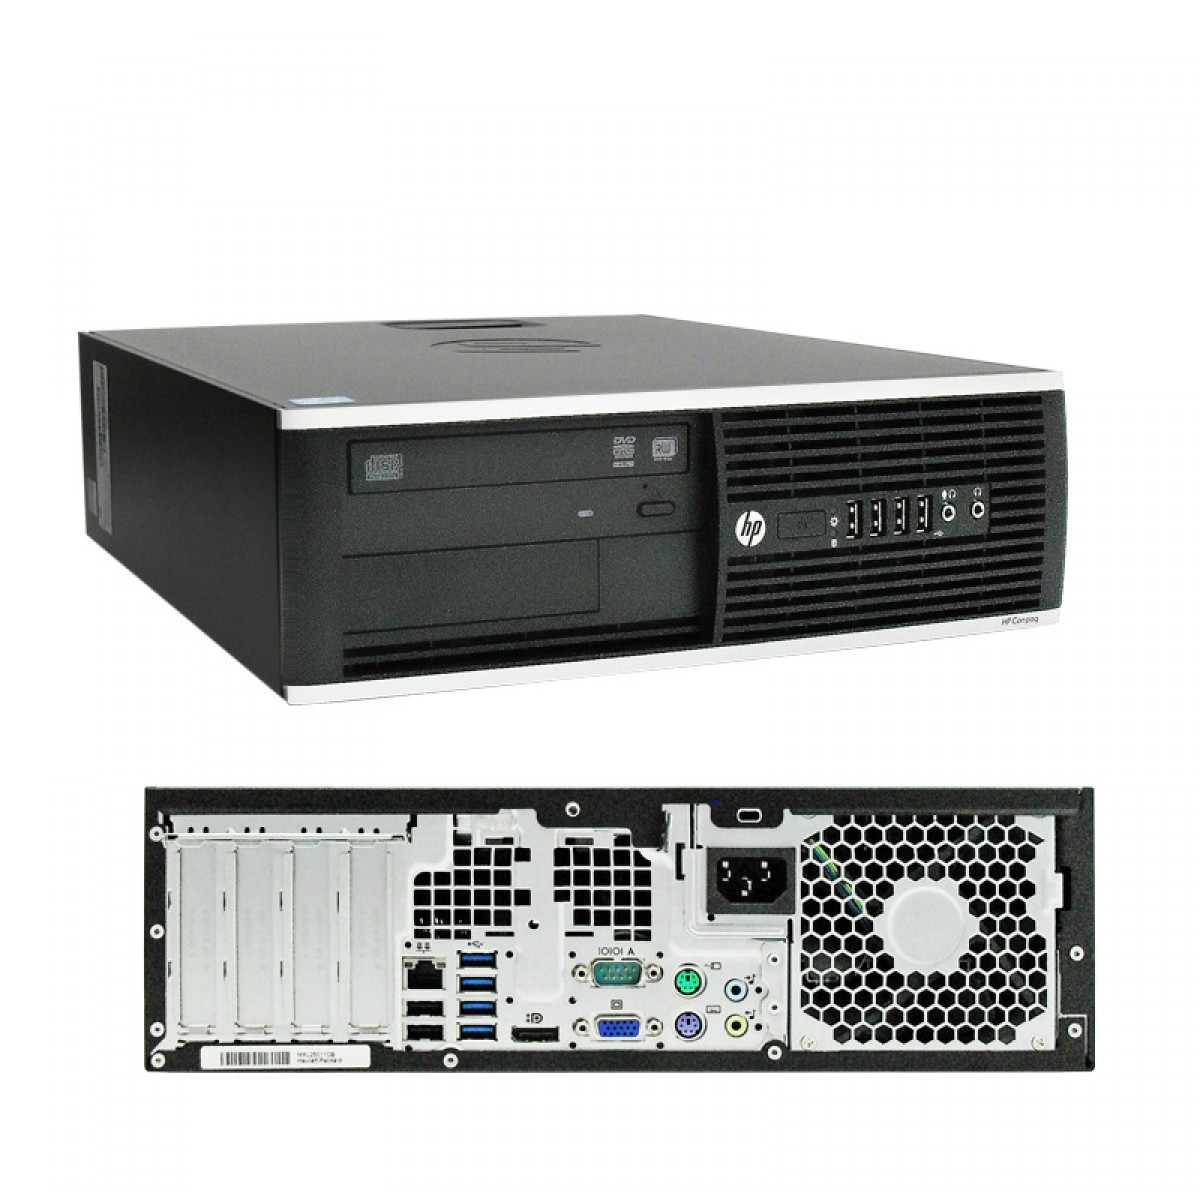 HP Elite 8300  - front and back view